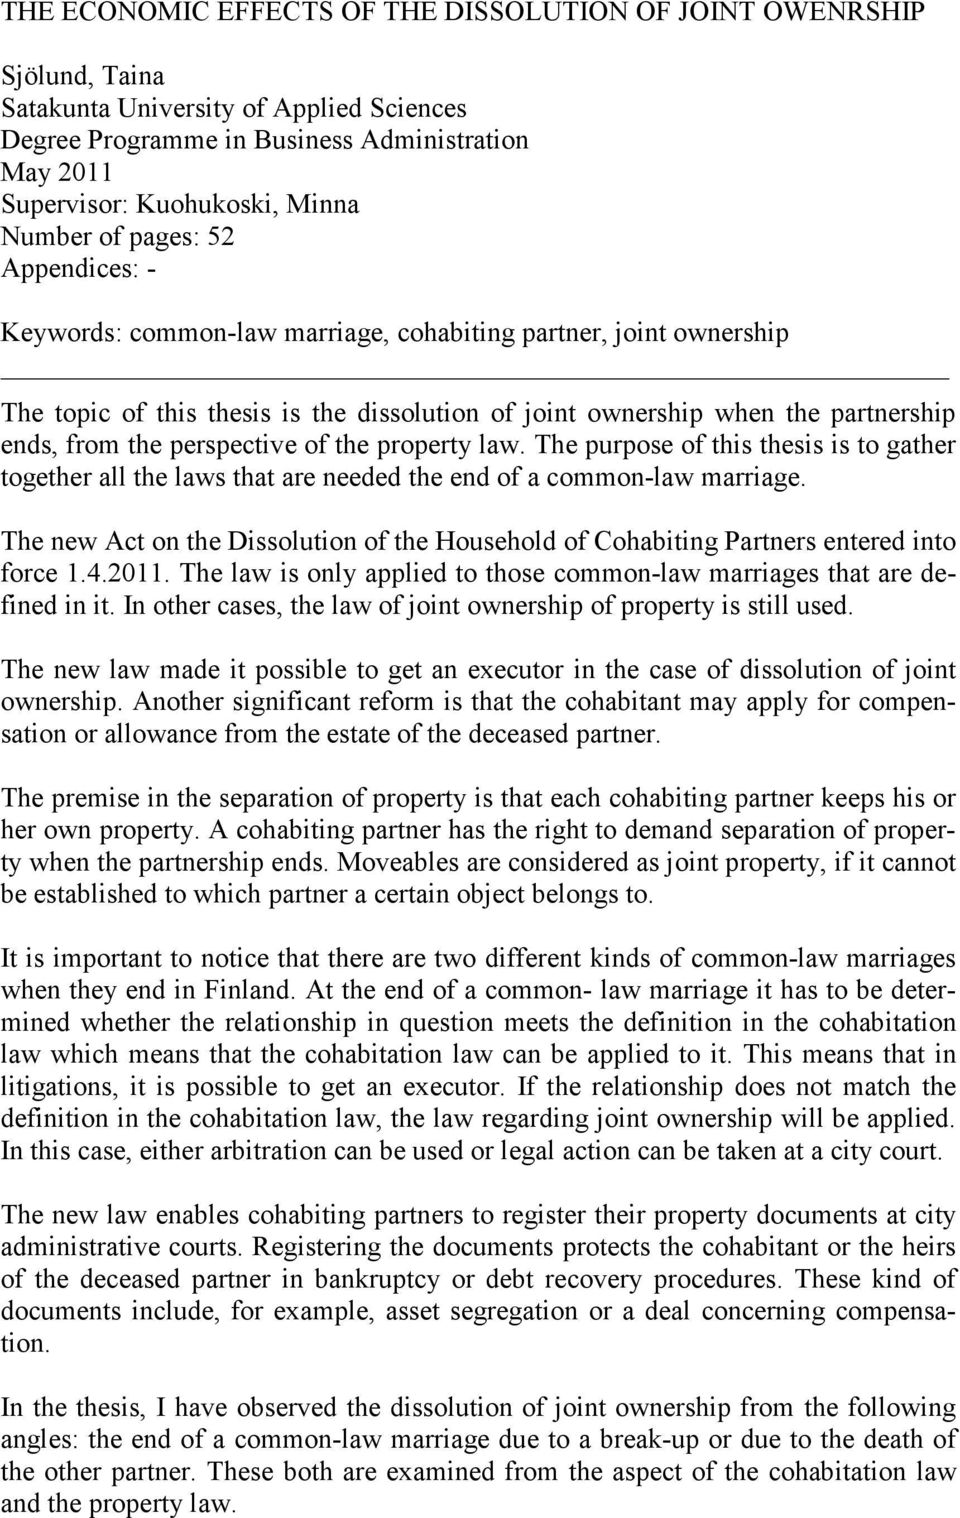 perspective of the property law. The purpose of this thesis is to gather together all the laws that are needed the end of a common-law marriage.